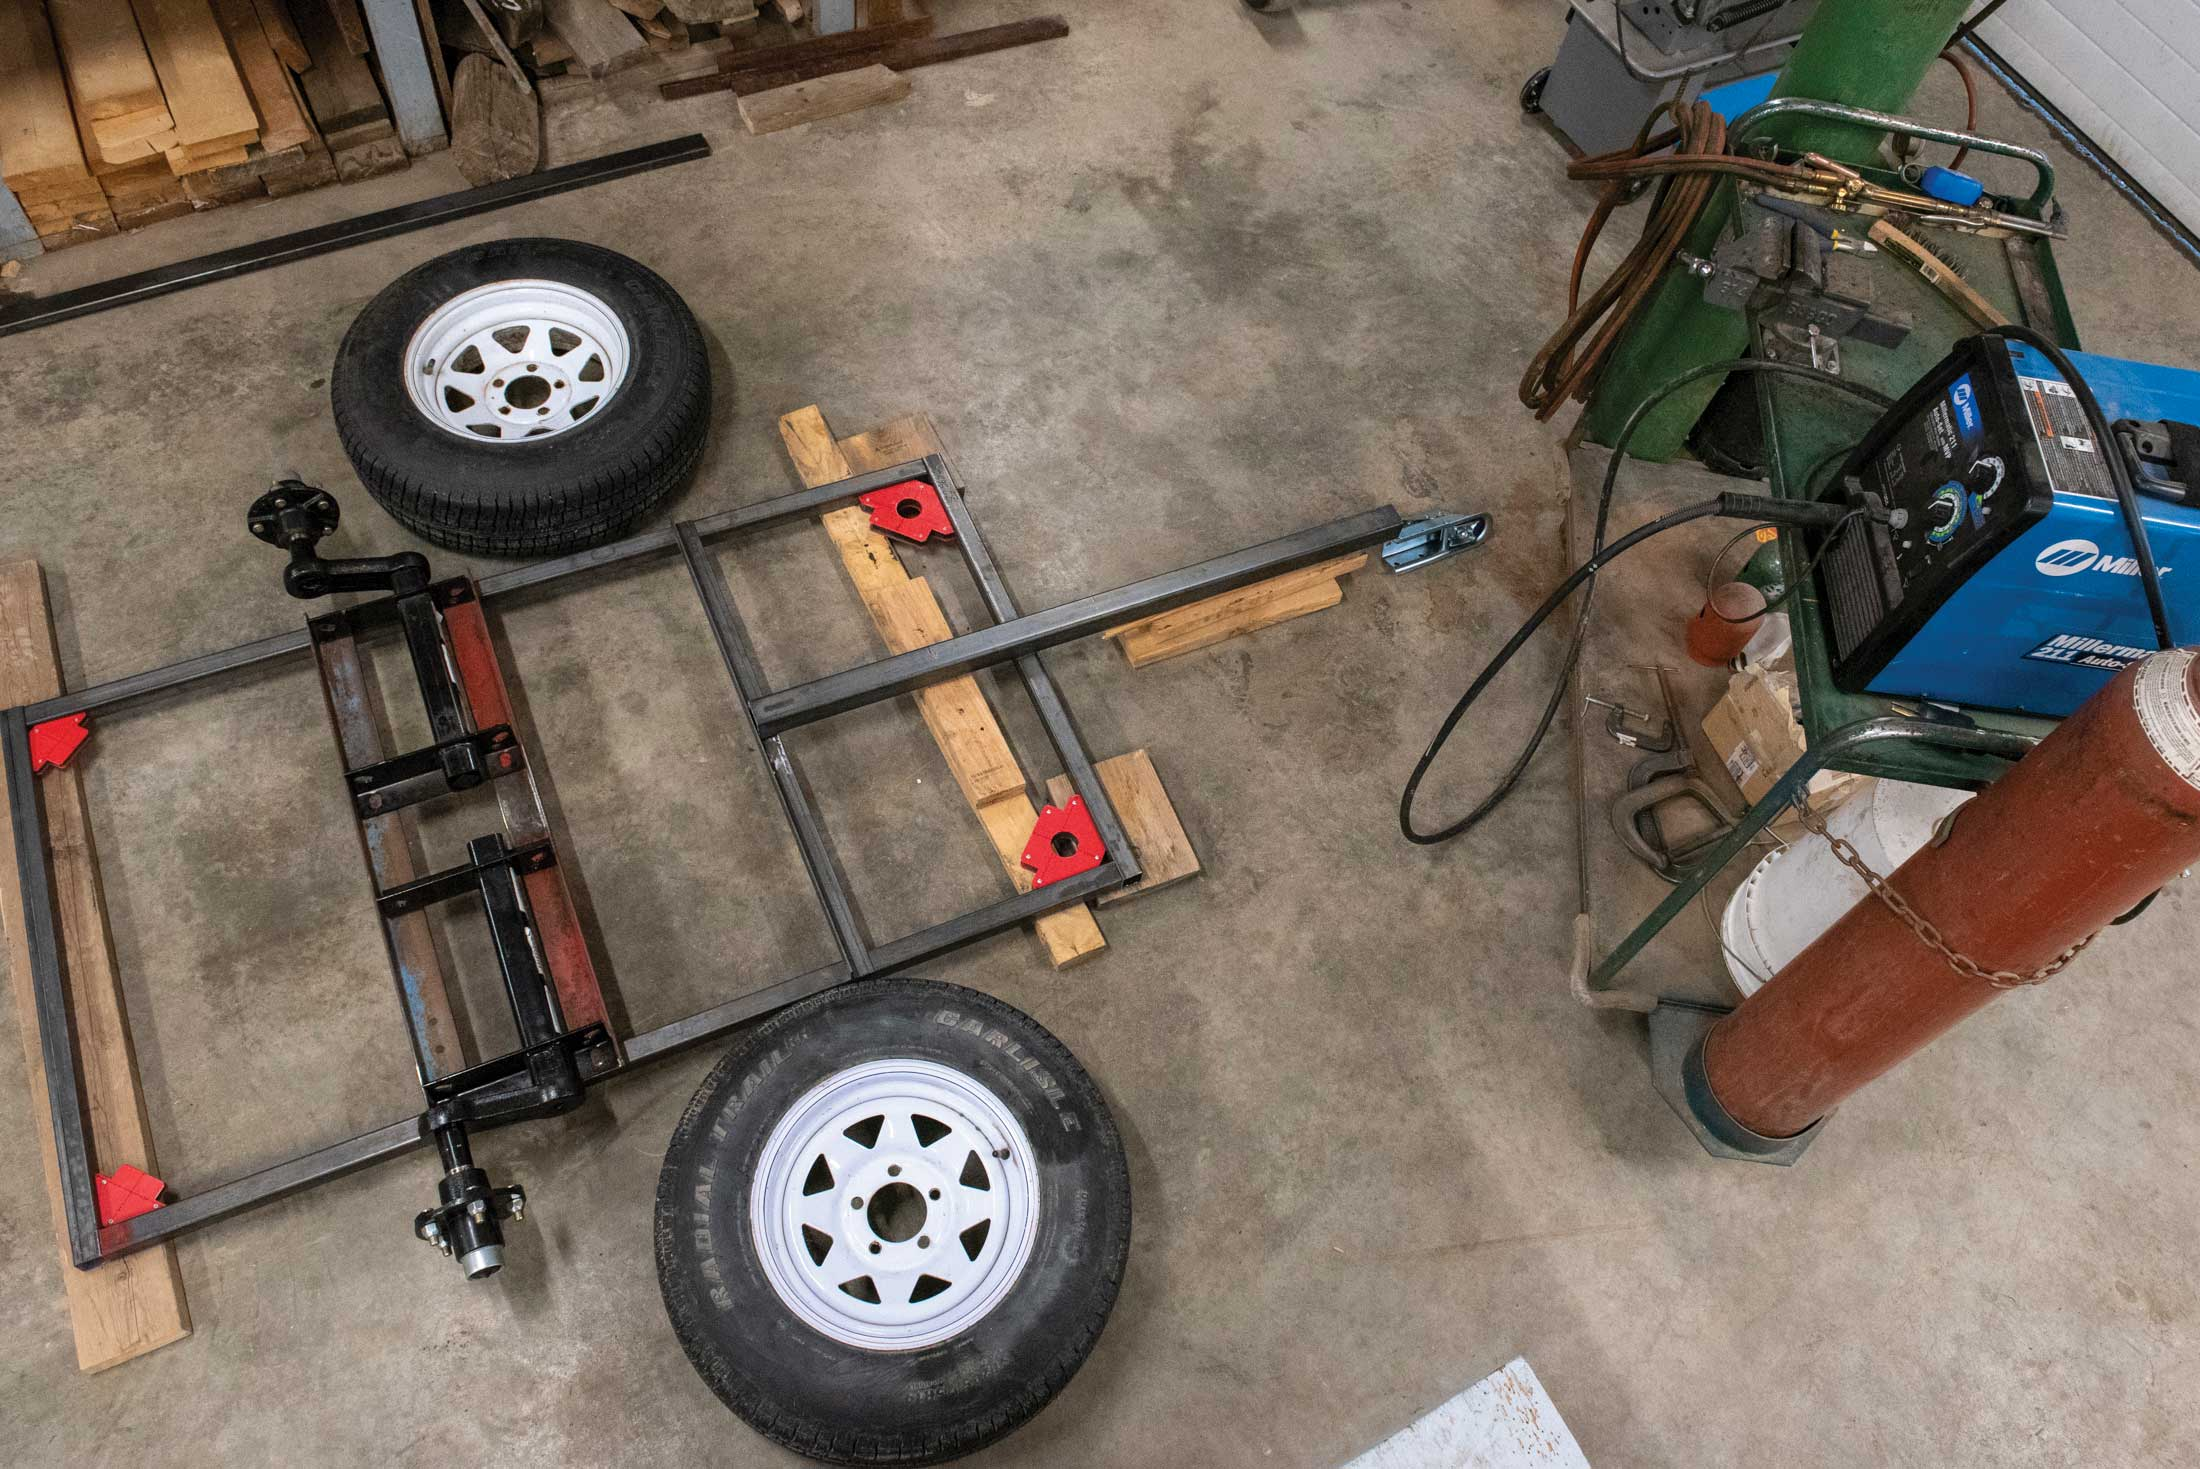 Step 1, plans and parts: I decided on the size, shape and parts specification for the trailer I wanted to build. I scrounged used metal where I could and purchased the parts and materials I needed.